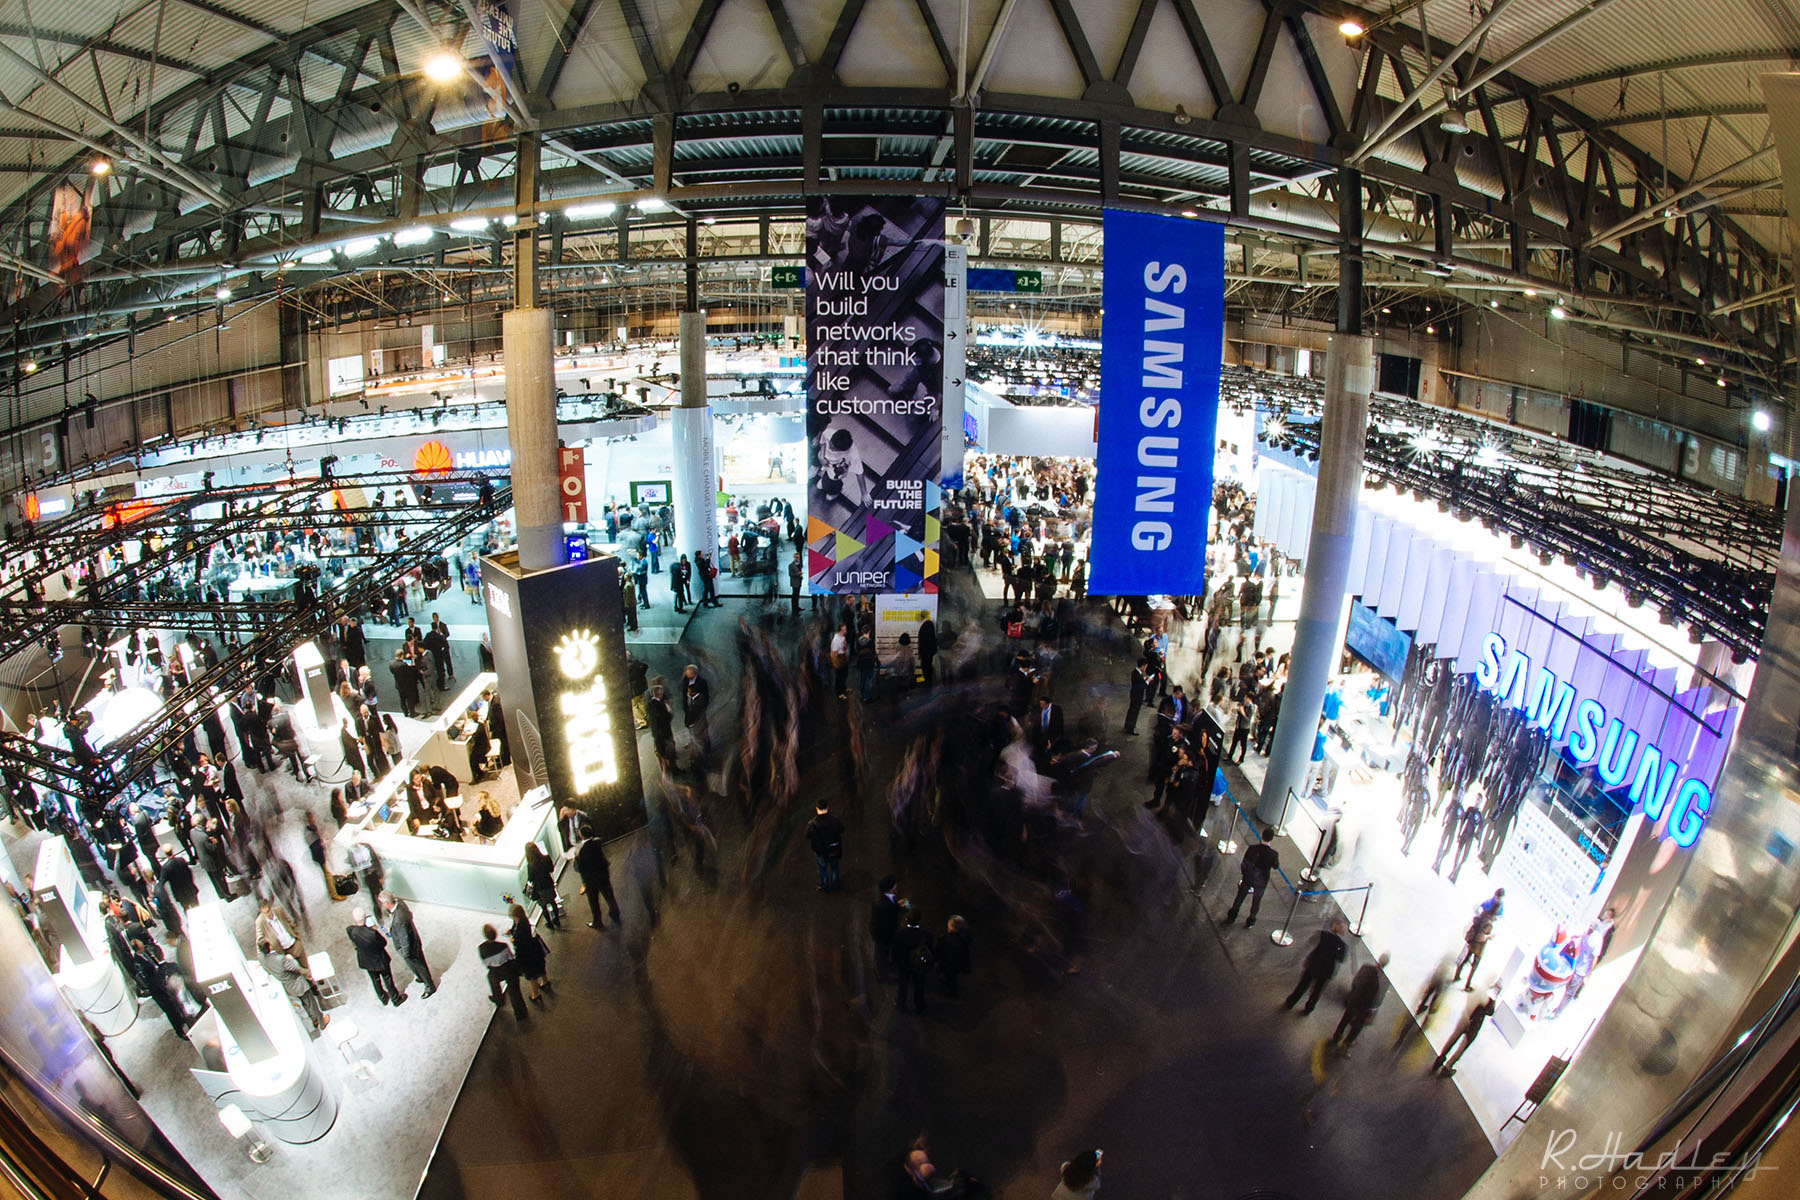 Event photography at the Mobile World Congress (MWC) at the FIRA in Barcelona.